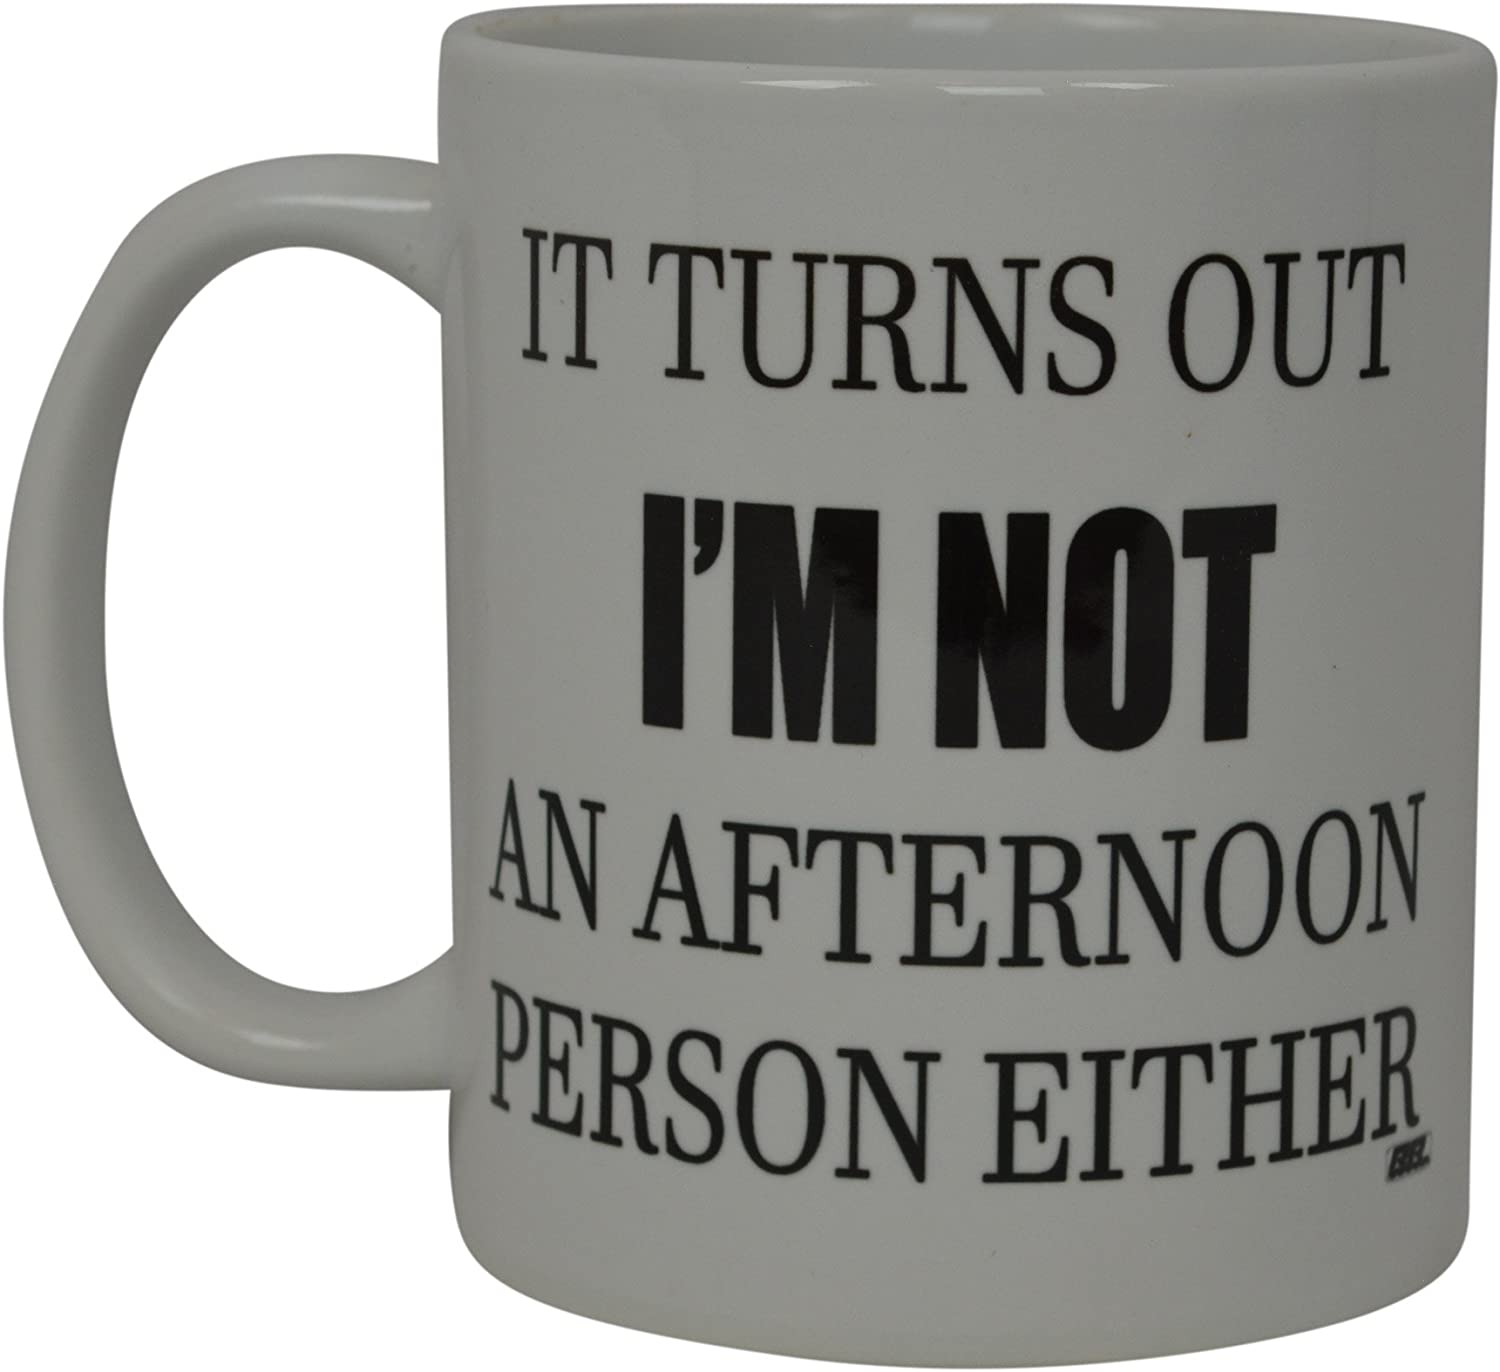 Best Funny Coffee Mug Not An Afternoon Person Either Novelty Cup Joke Great Gag Gift Idea For Men Women Office Work Employee Boss Coworkers